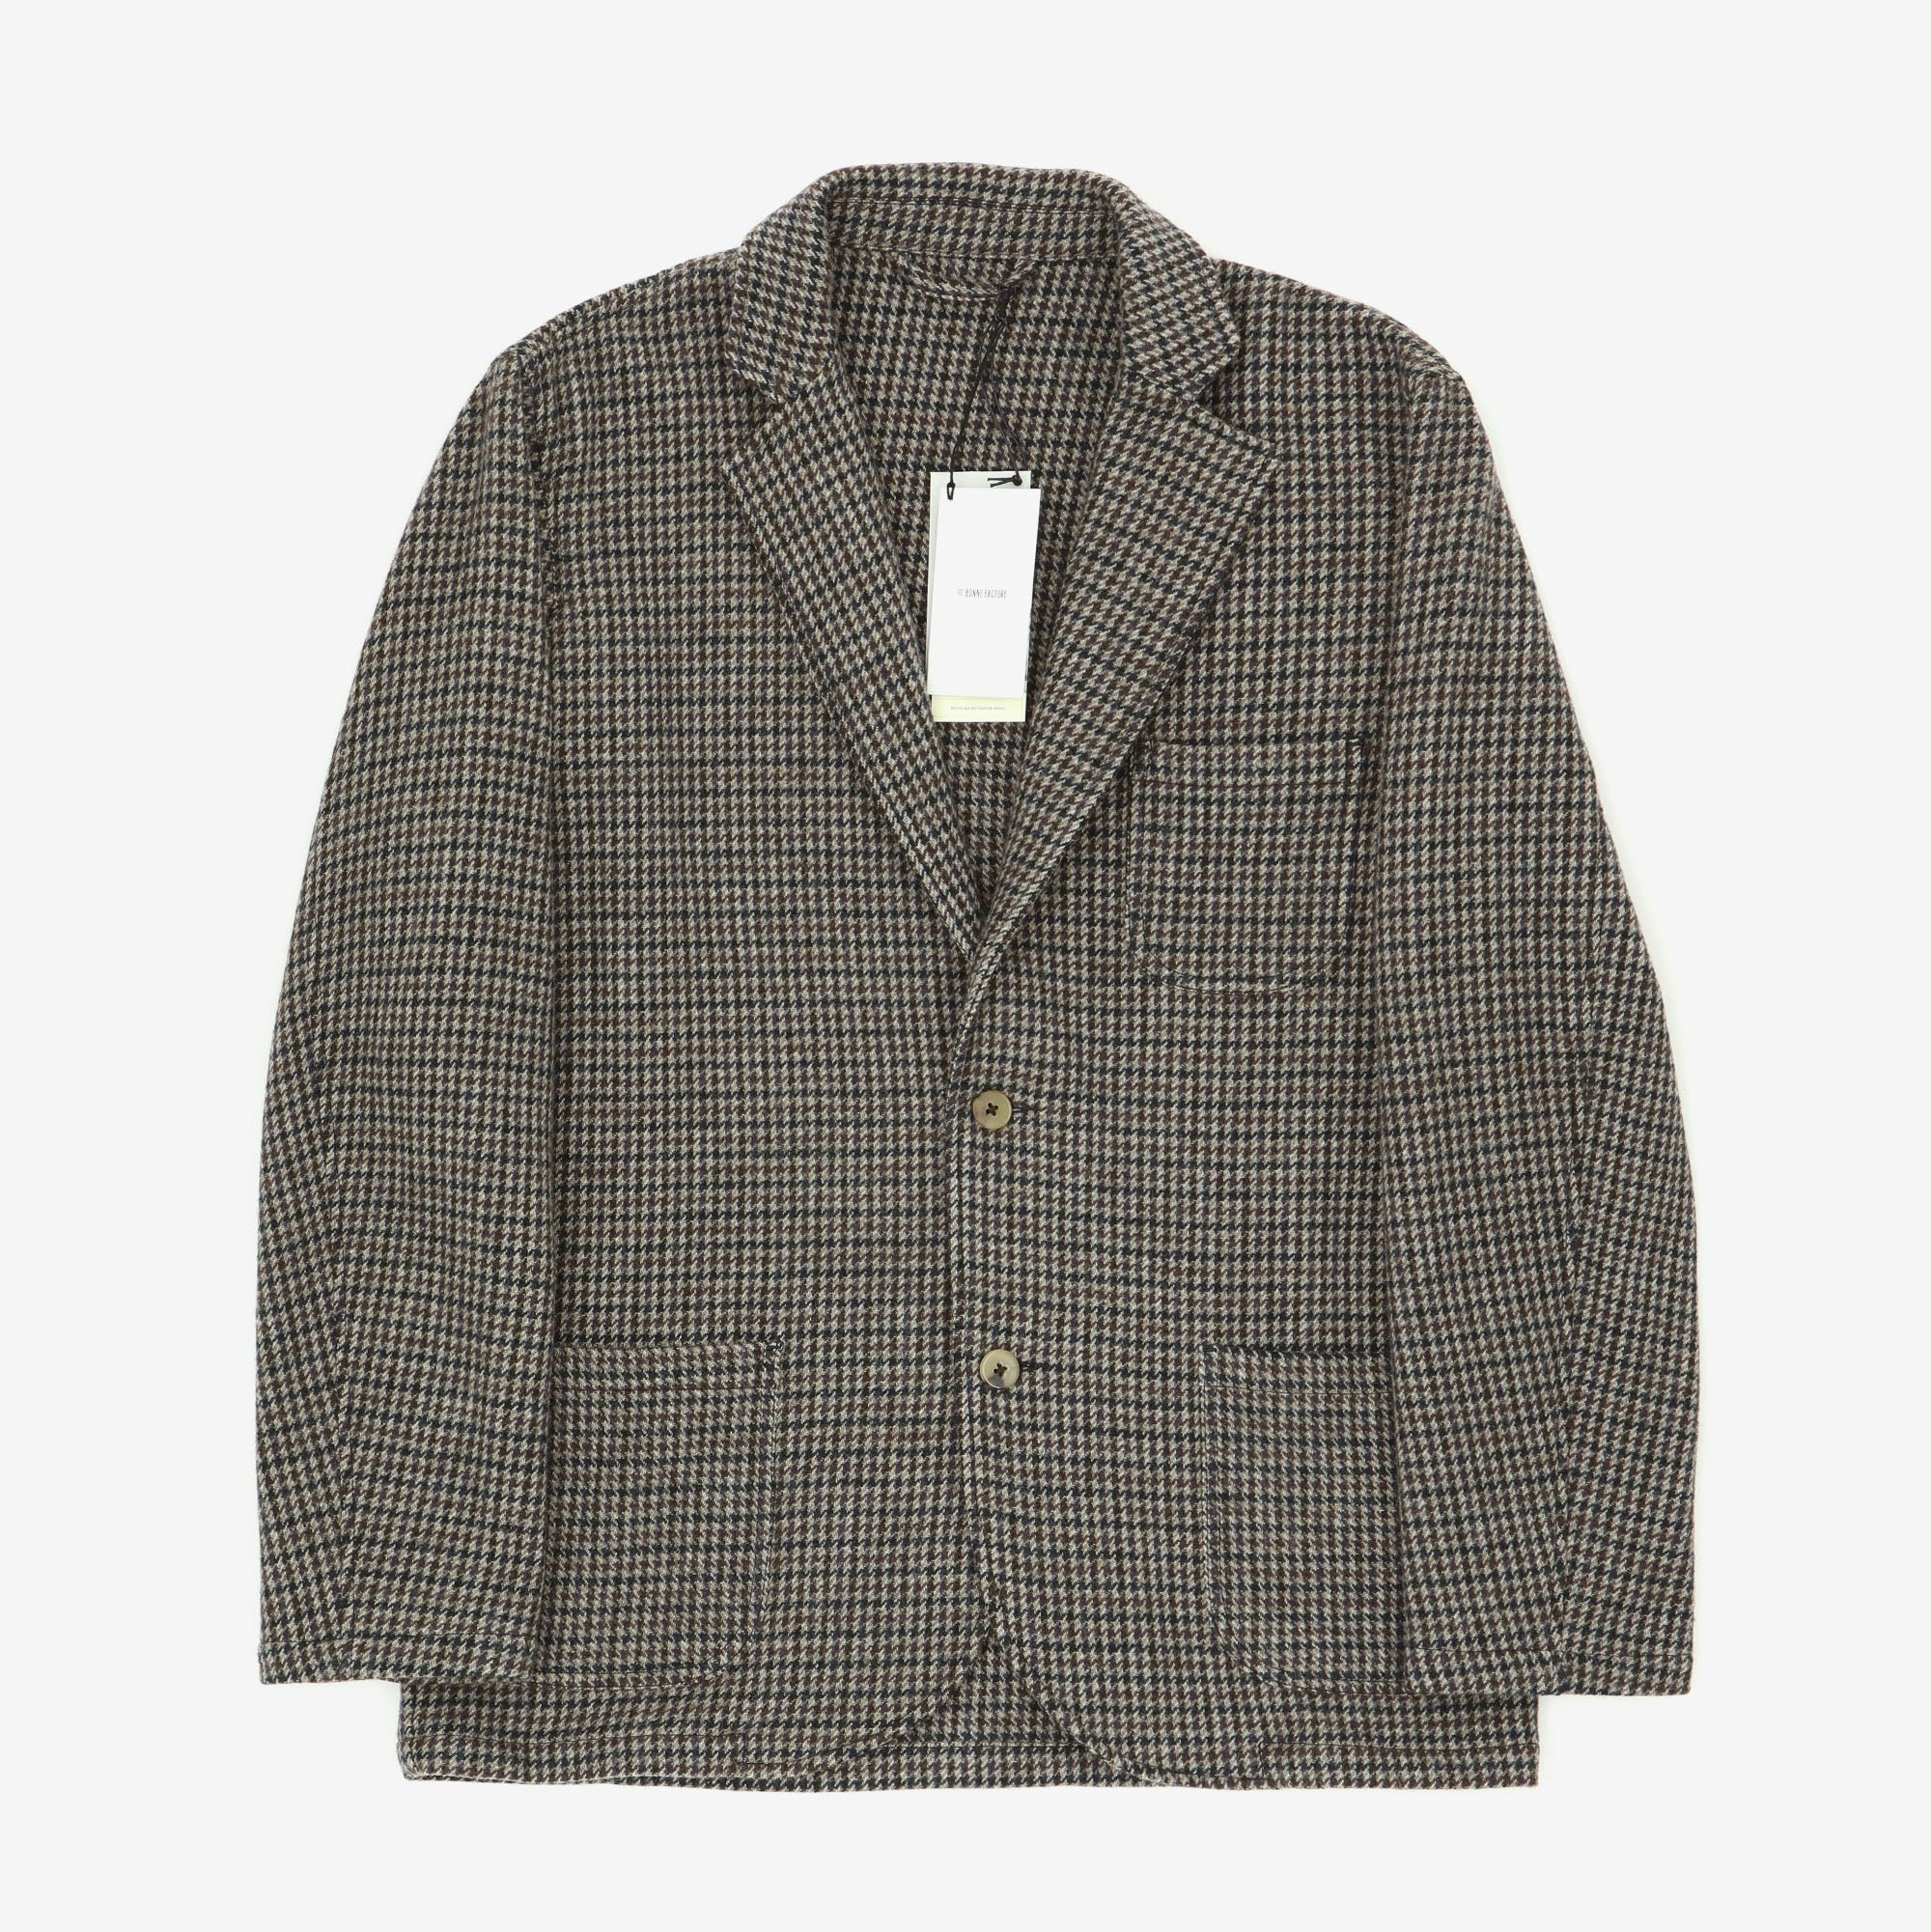 Houndstooth Wool Jacket